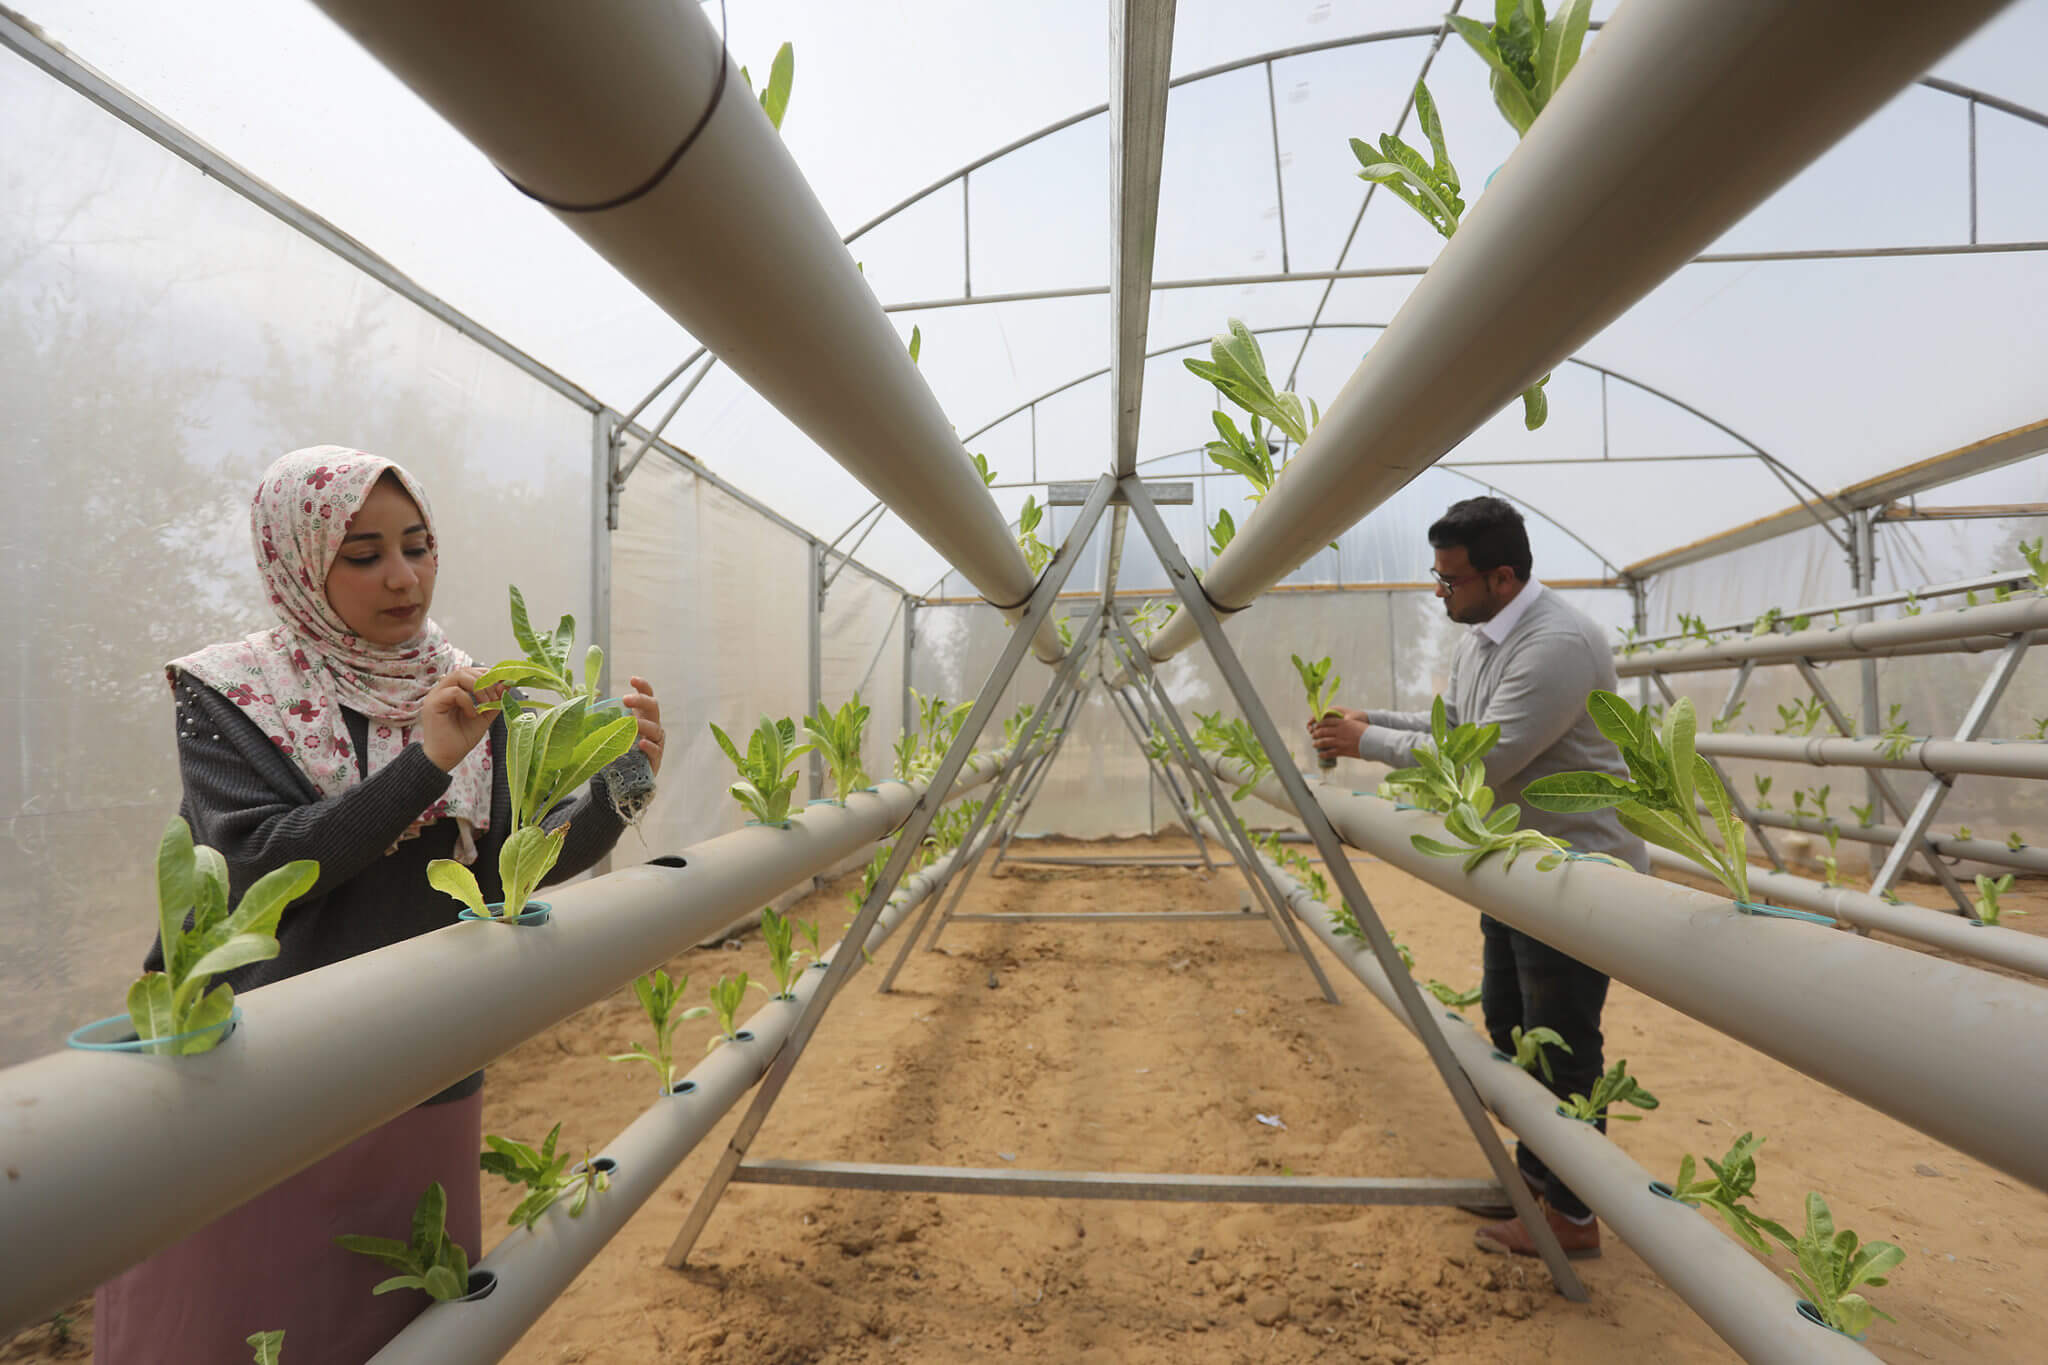 Agricultural engineers use the hydroponic method of agriculture, which grows plants in nutrient solutions with no soil